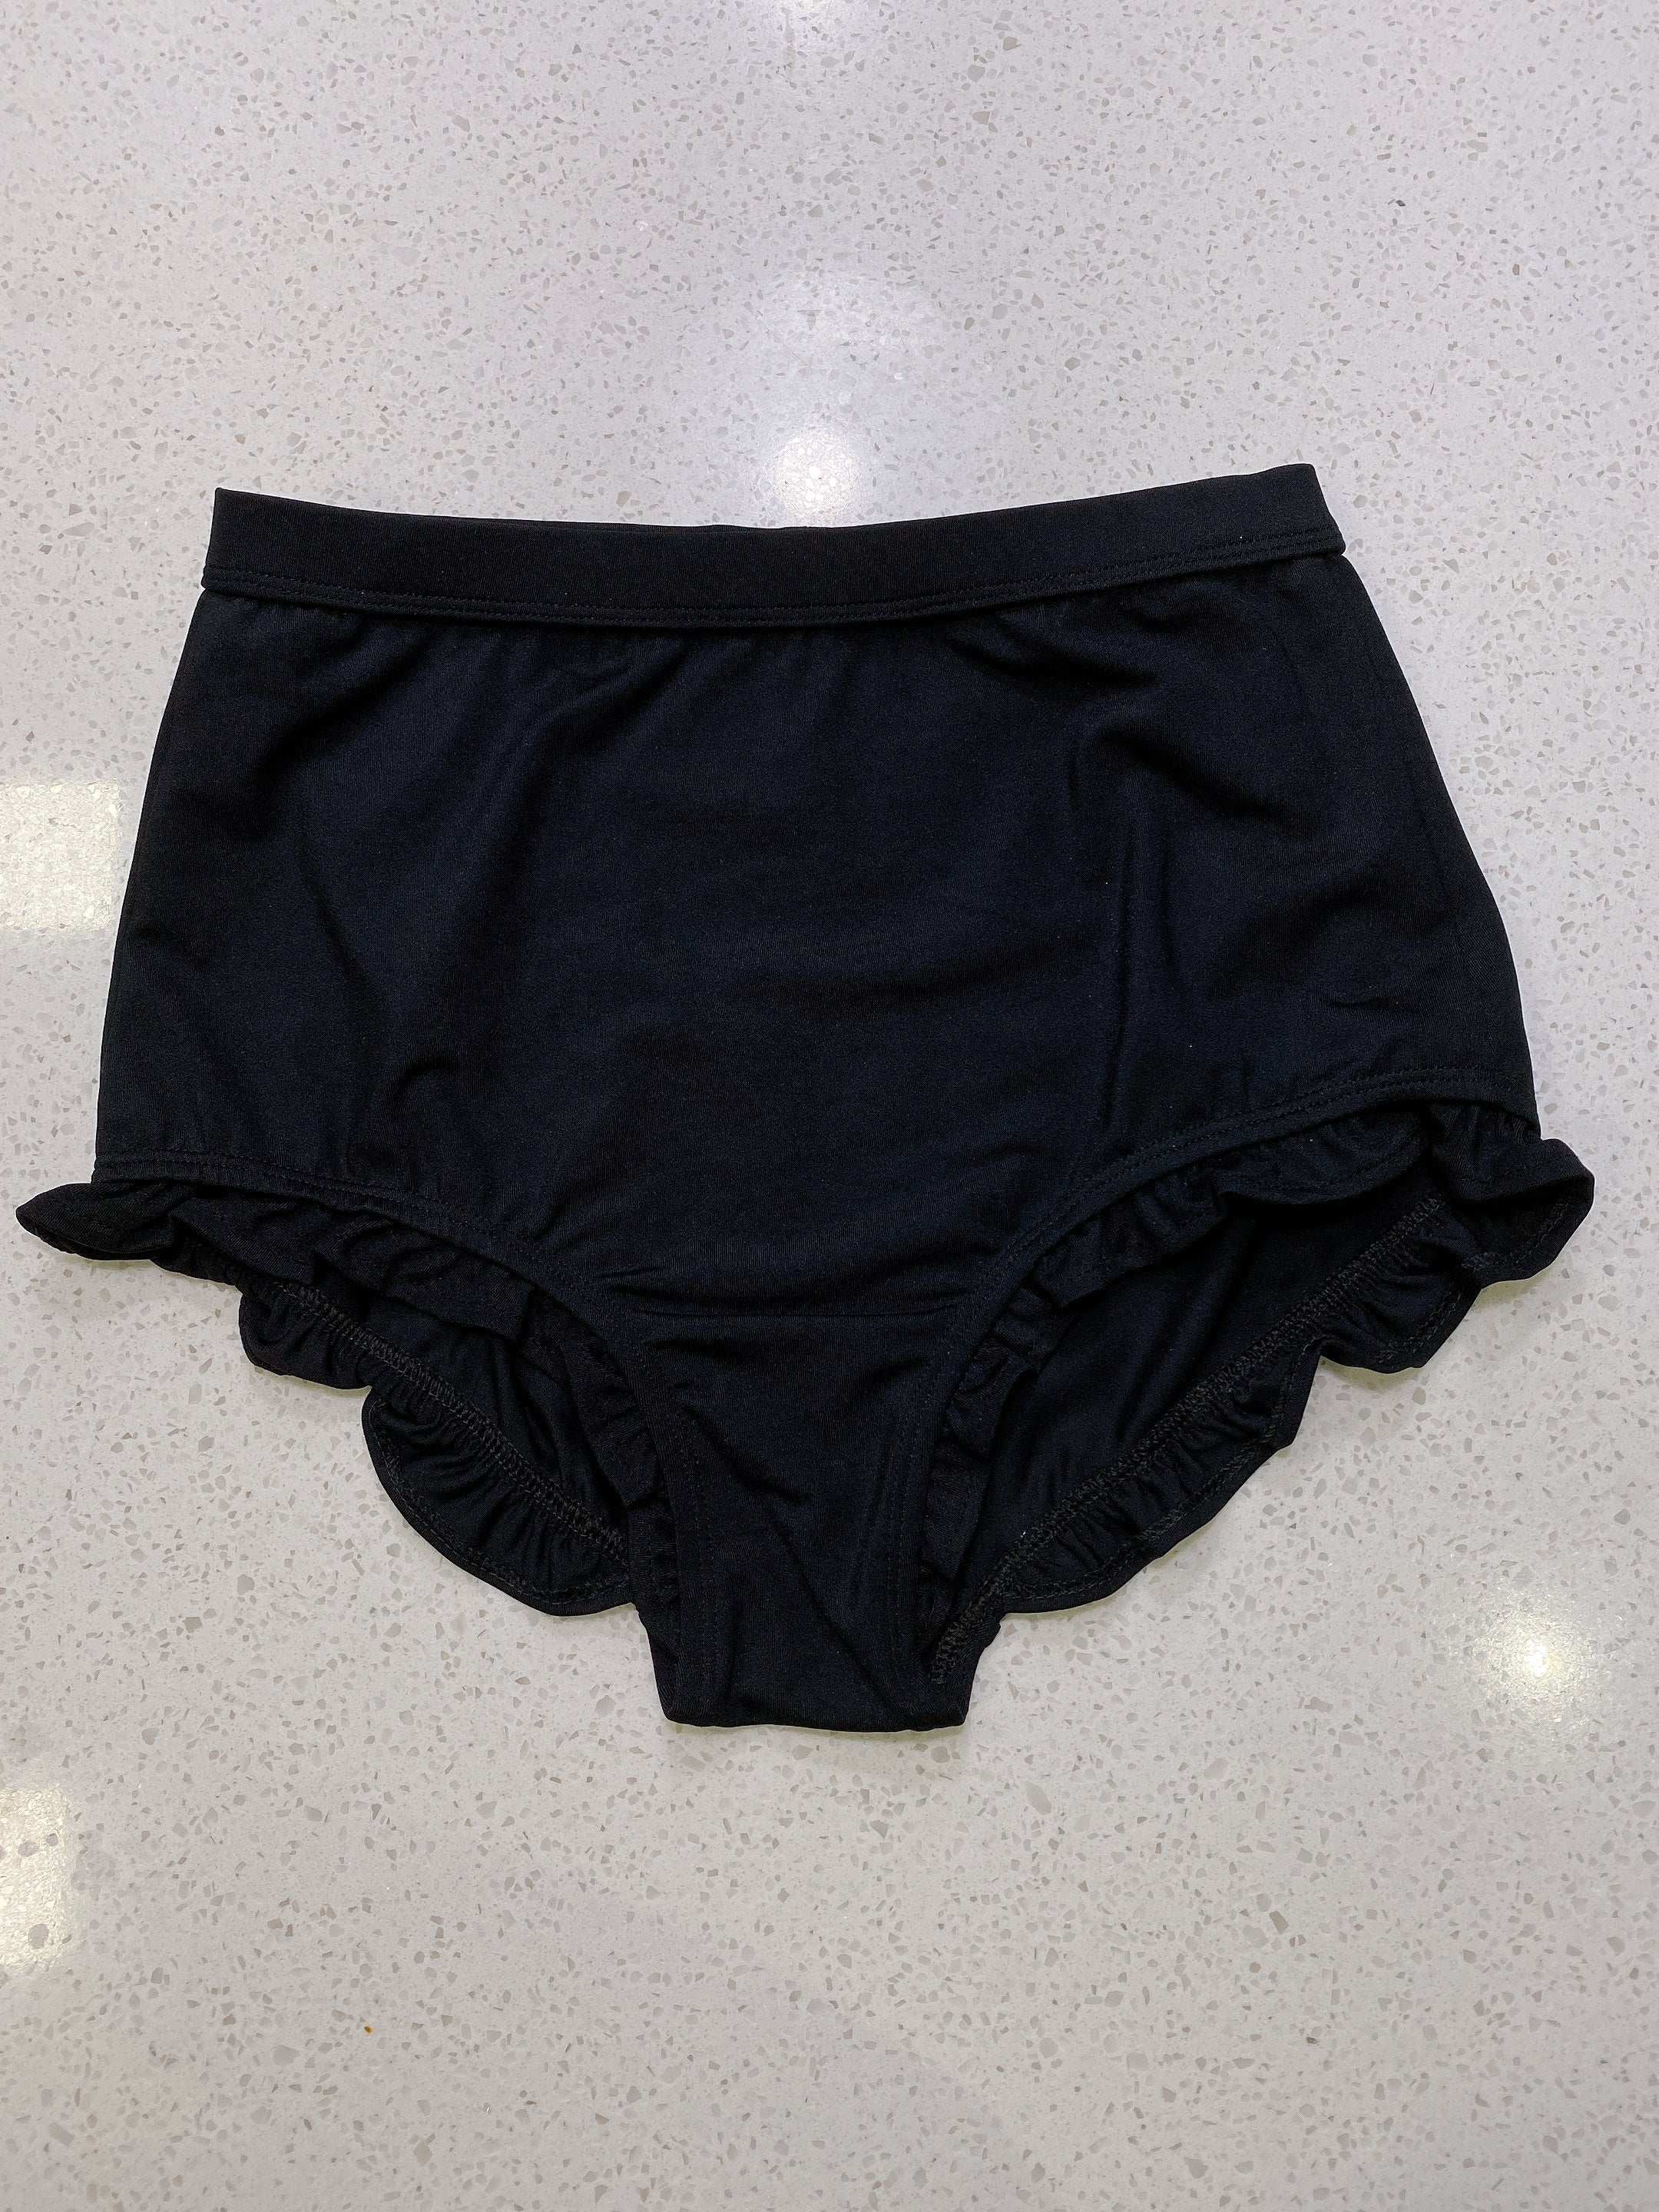 SAMPLE SALE: BLACK BOTTOM WITH RUFFLES